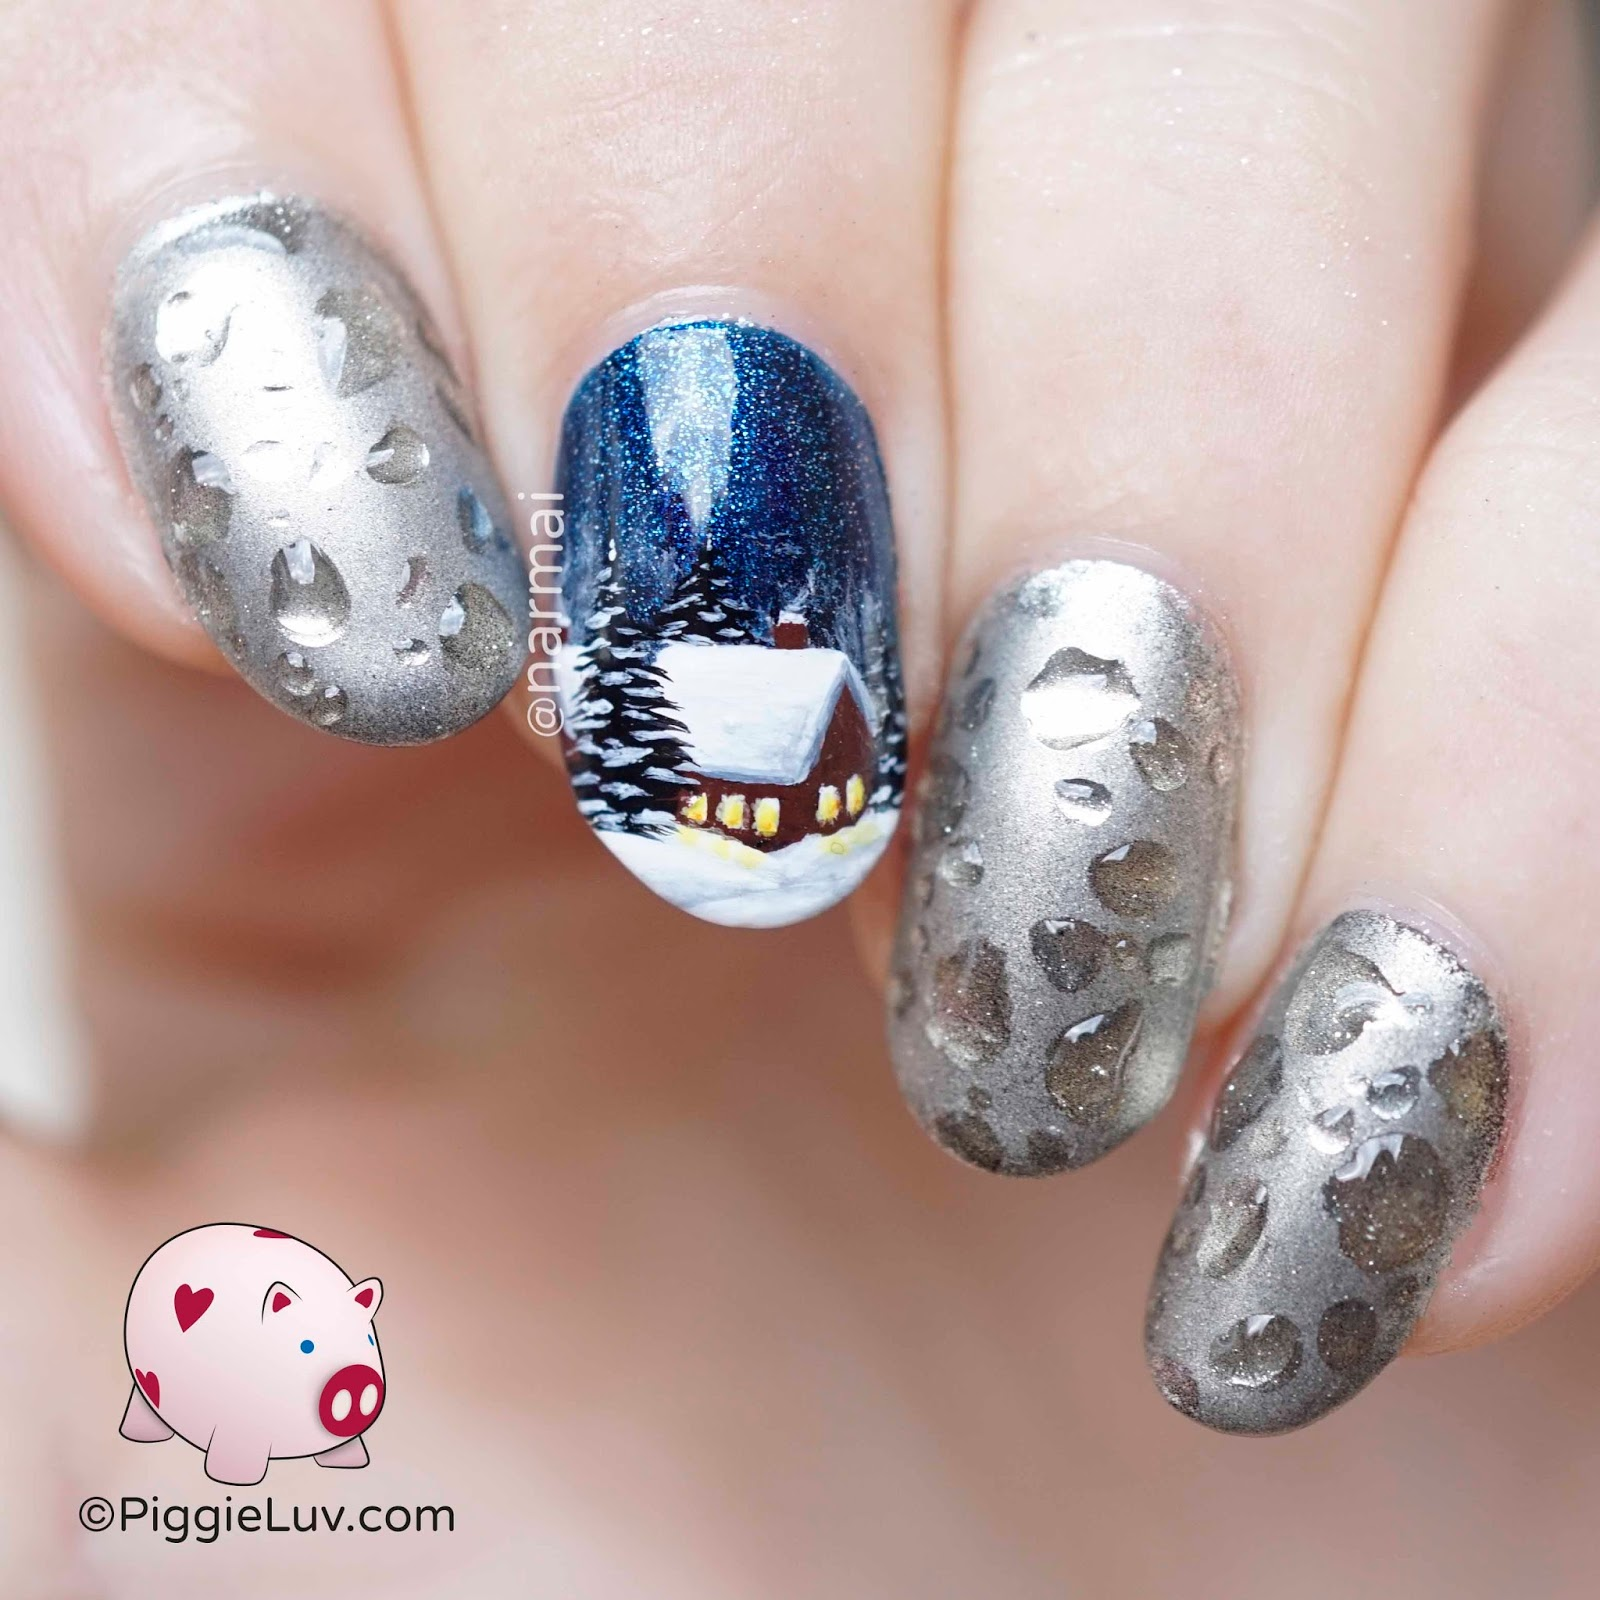 PiggieLuv: Wet winter nail art